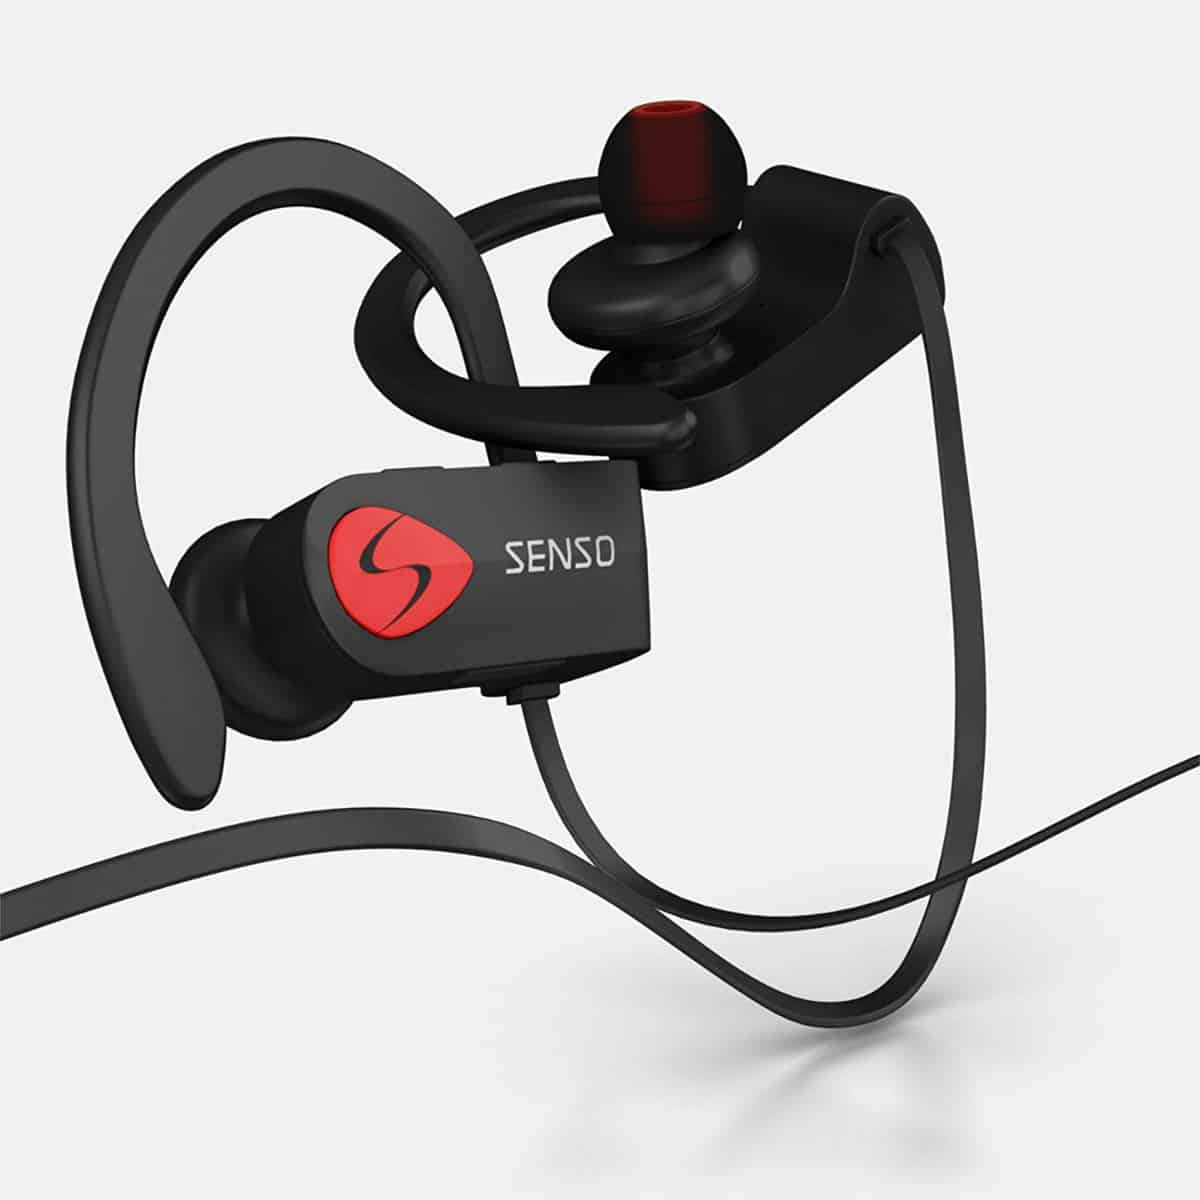 SENSO Bluetooth Headphones | Best Wireless Earbuds On Amazon